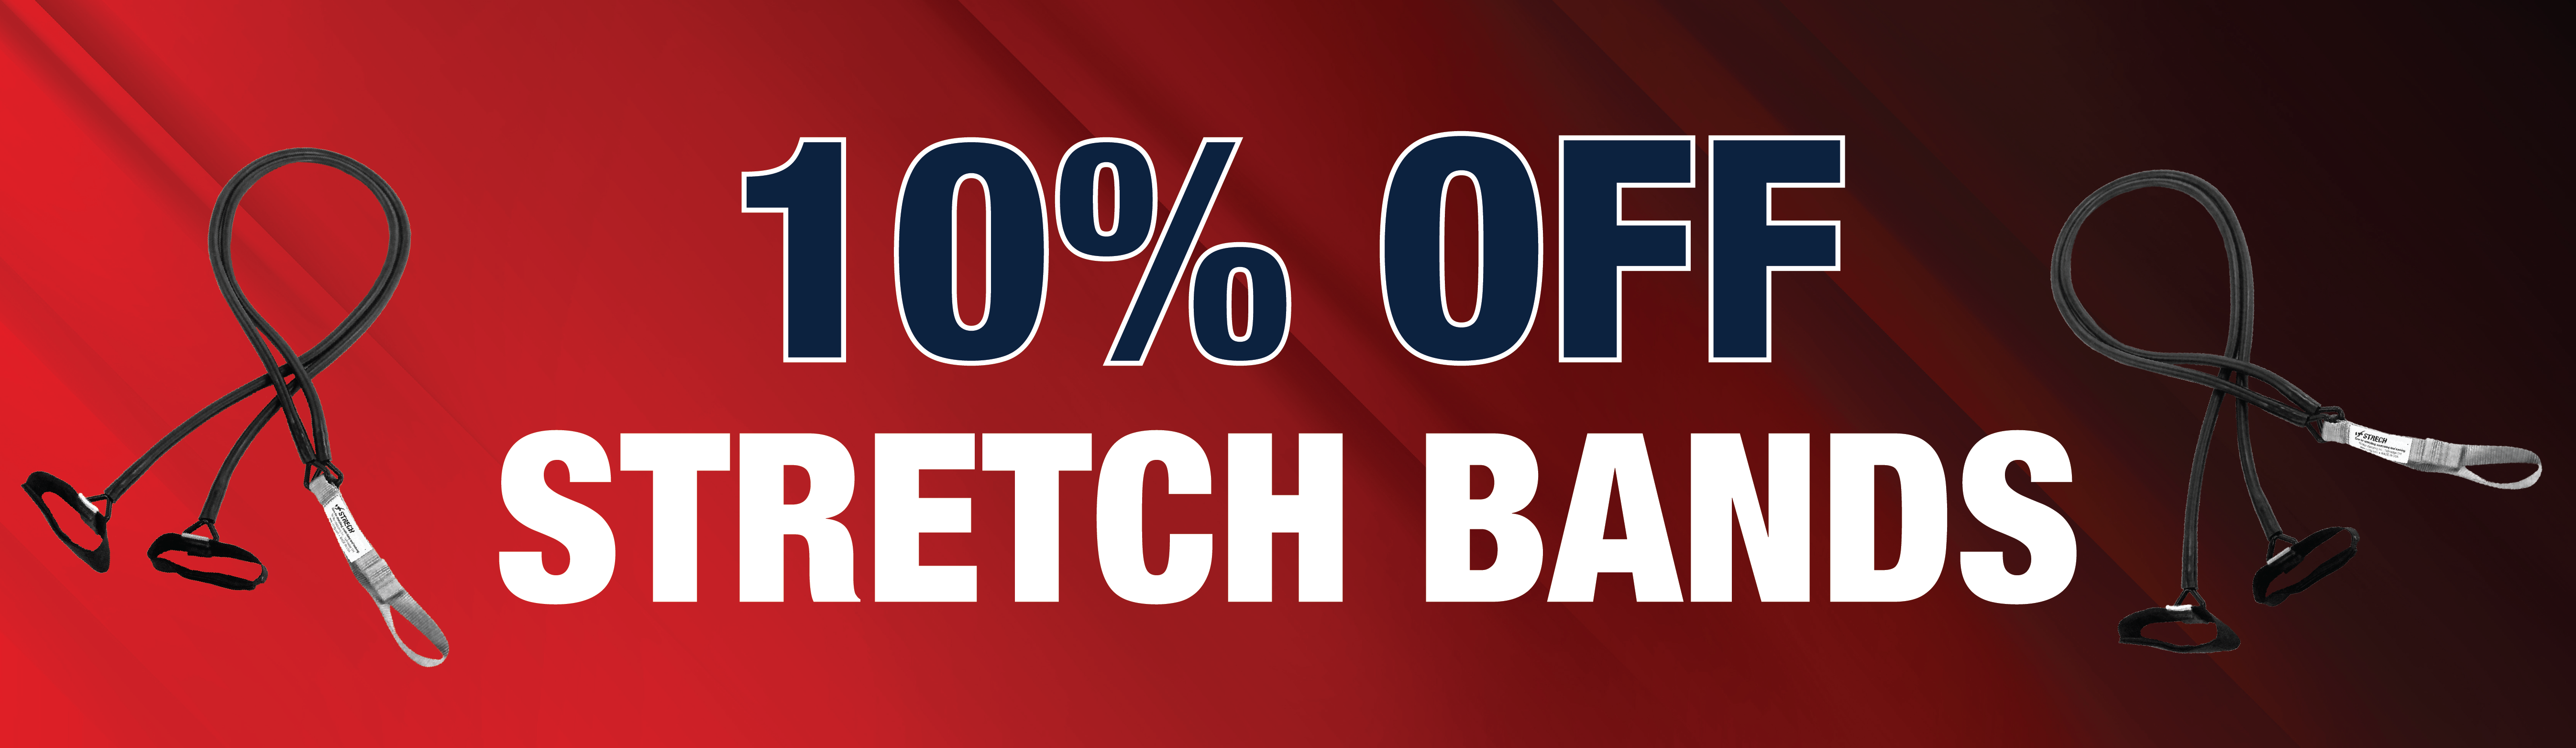 10 % Off Stretch Bands